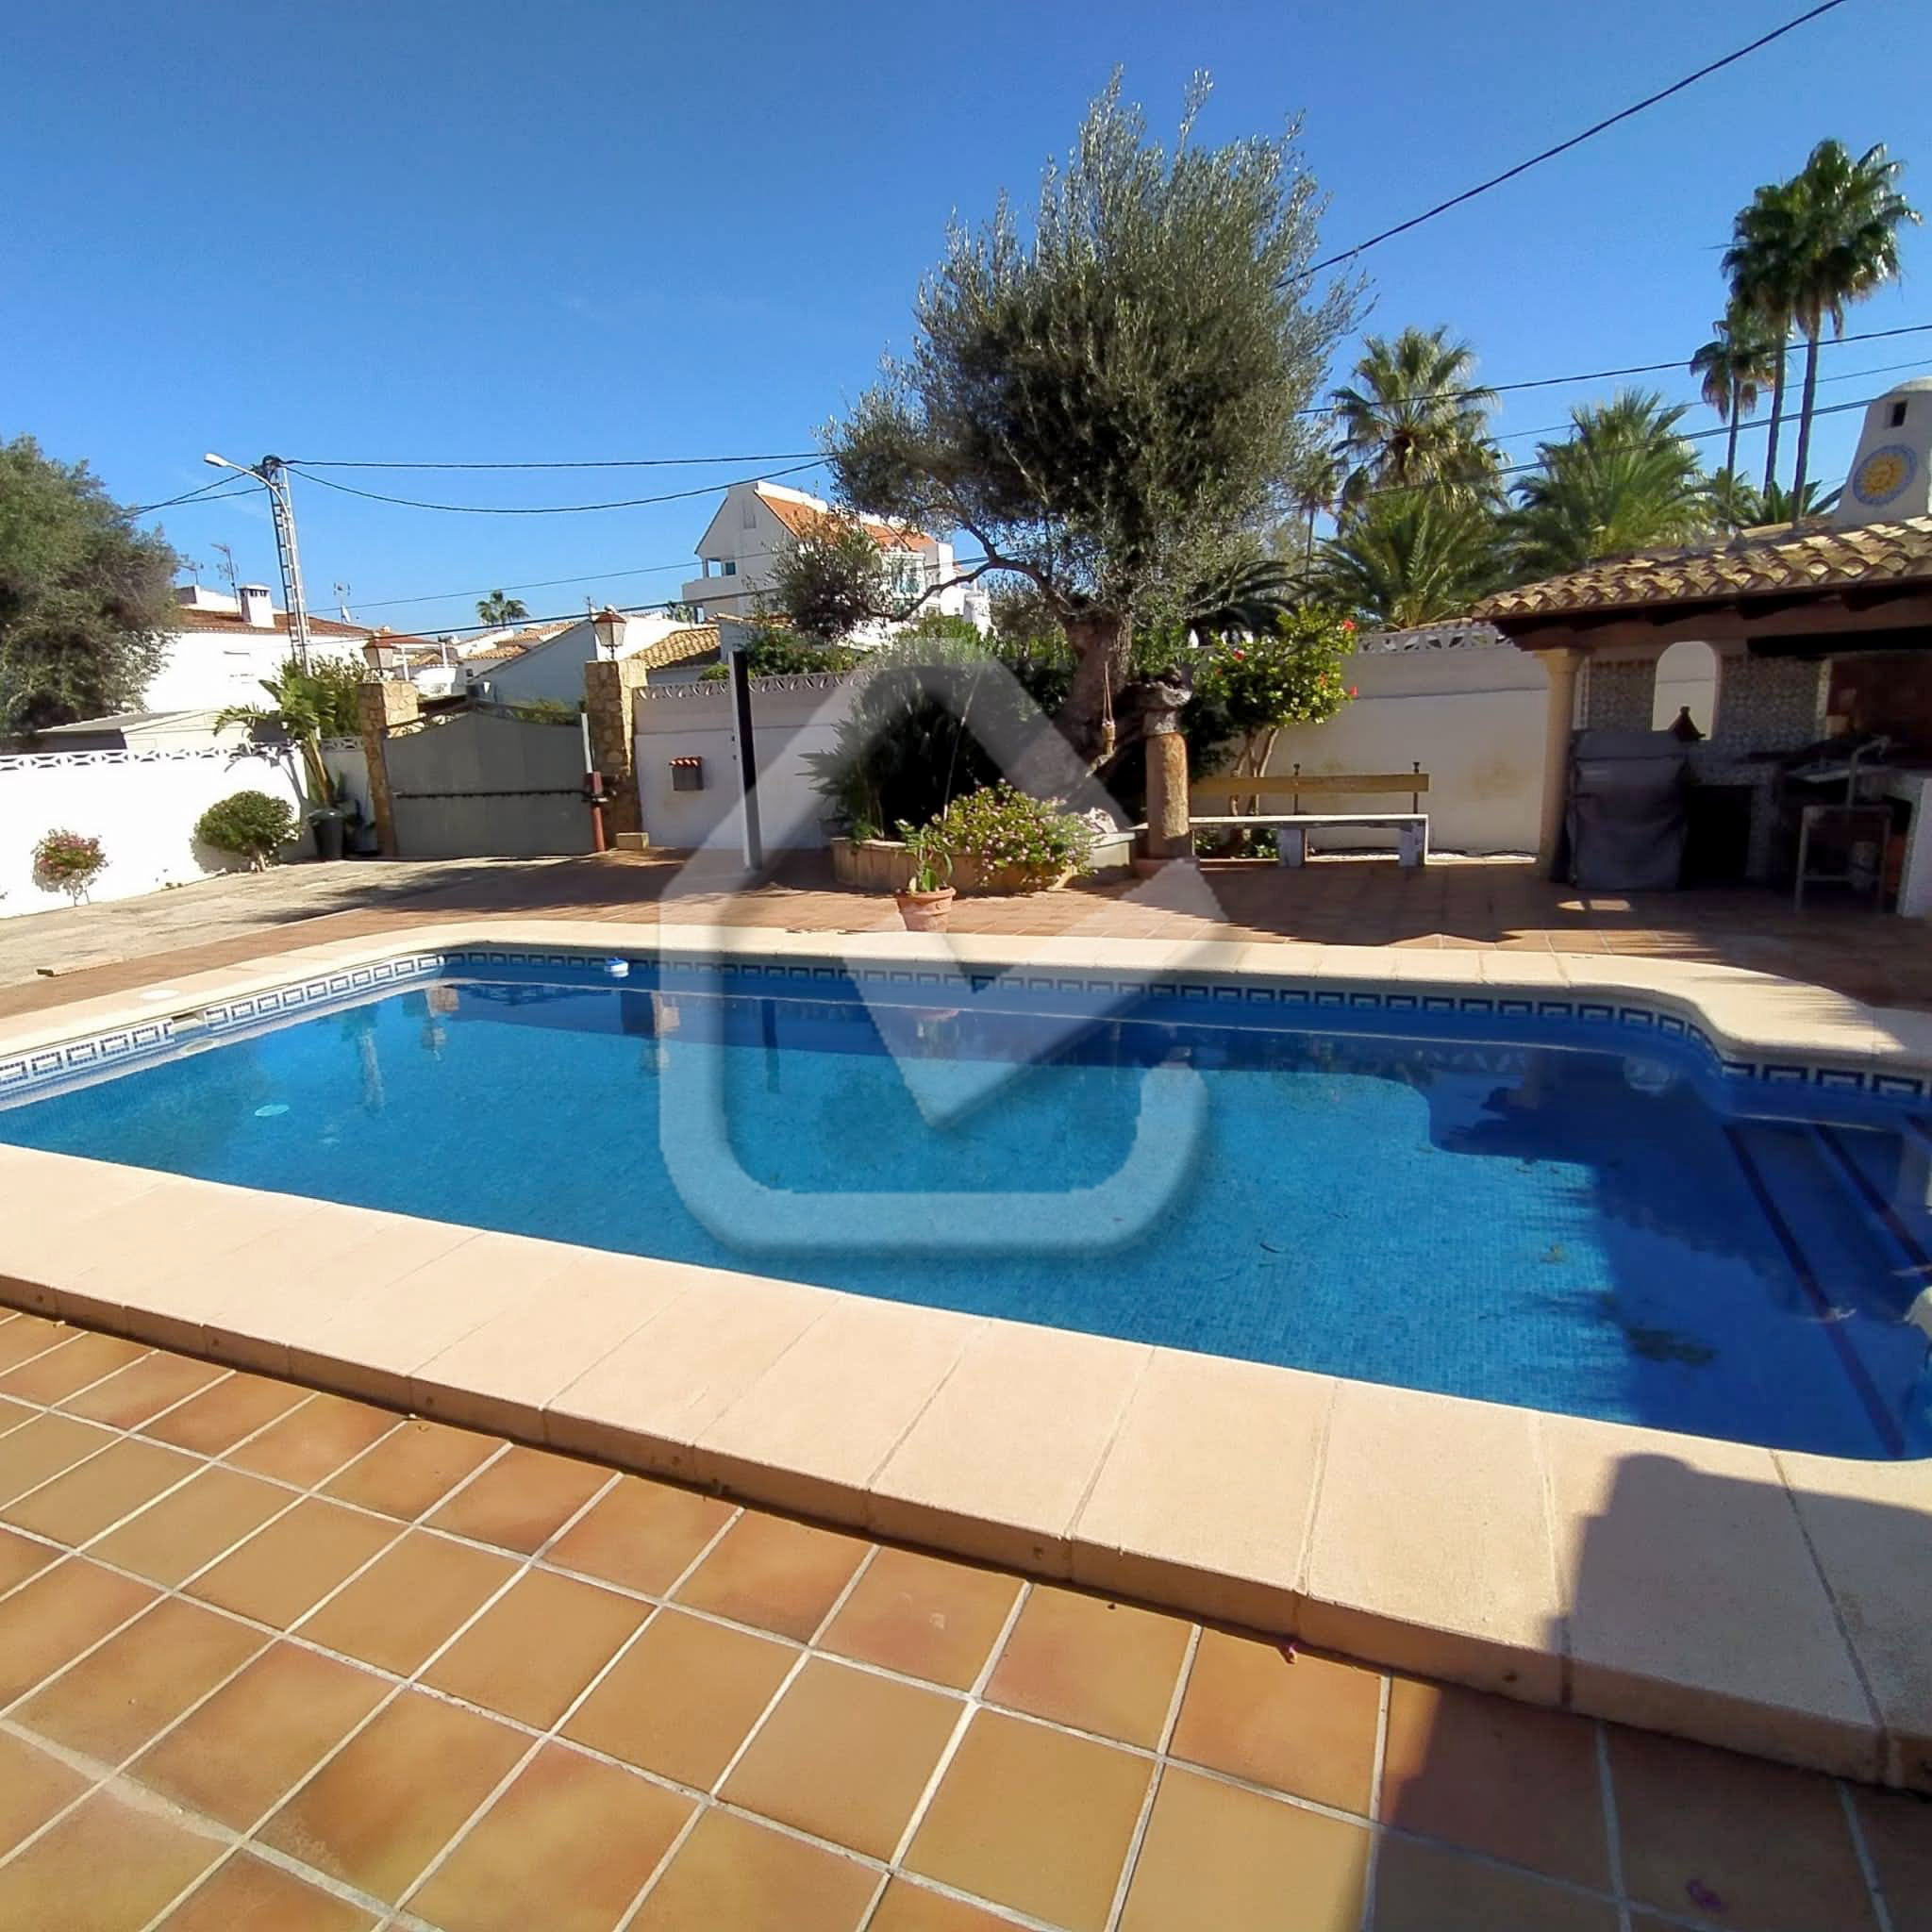 Photo  number 49: Villa in Sale in Denia, Area Marinas, Sector Bassetes-bovetes. Ref. 5-36-14957